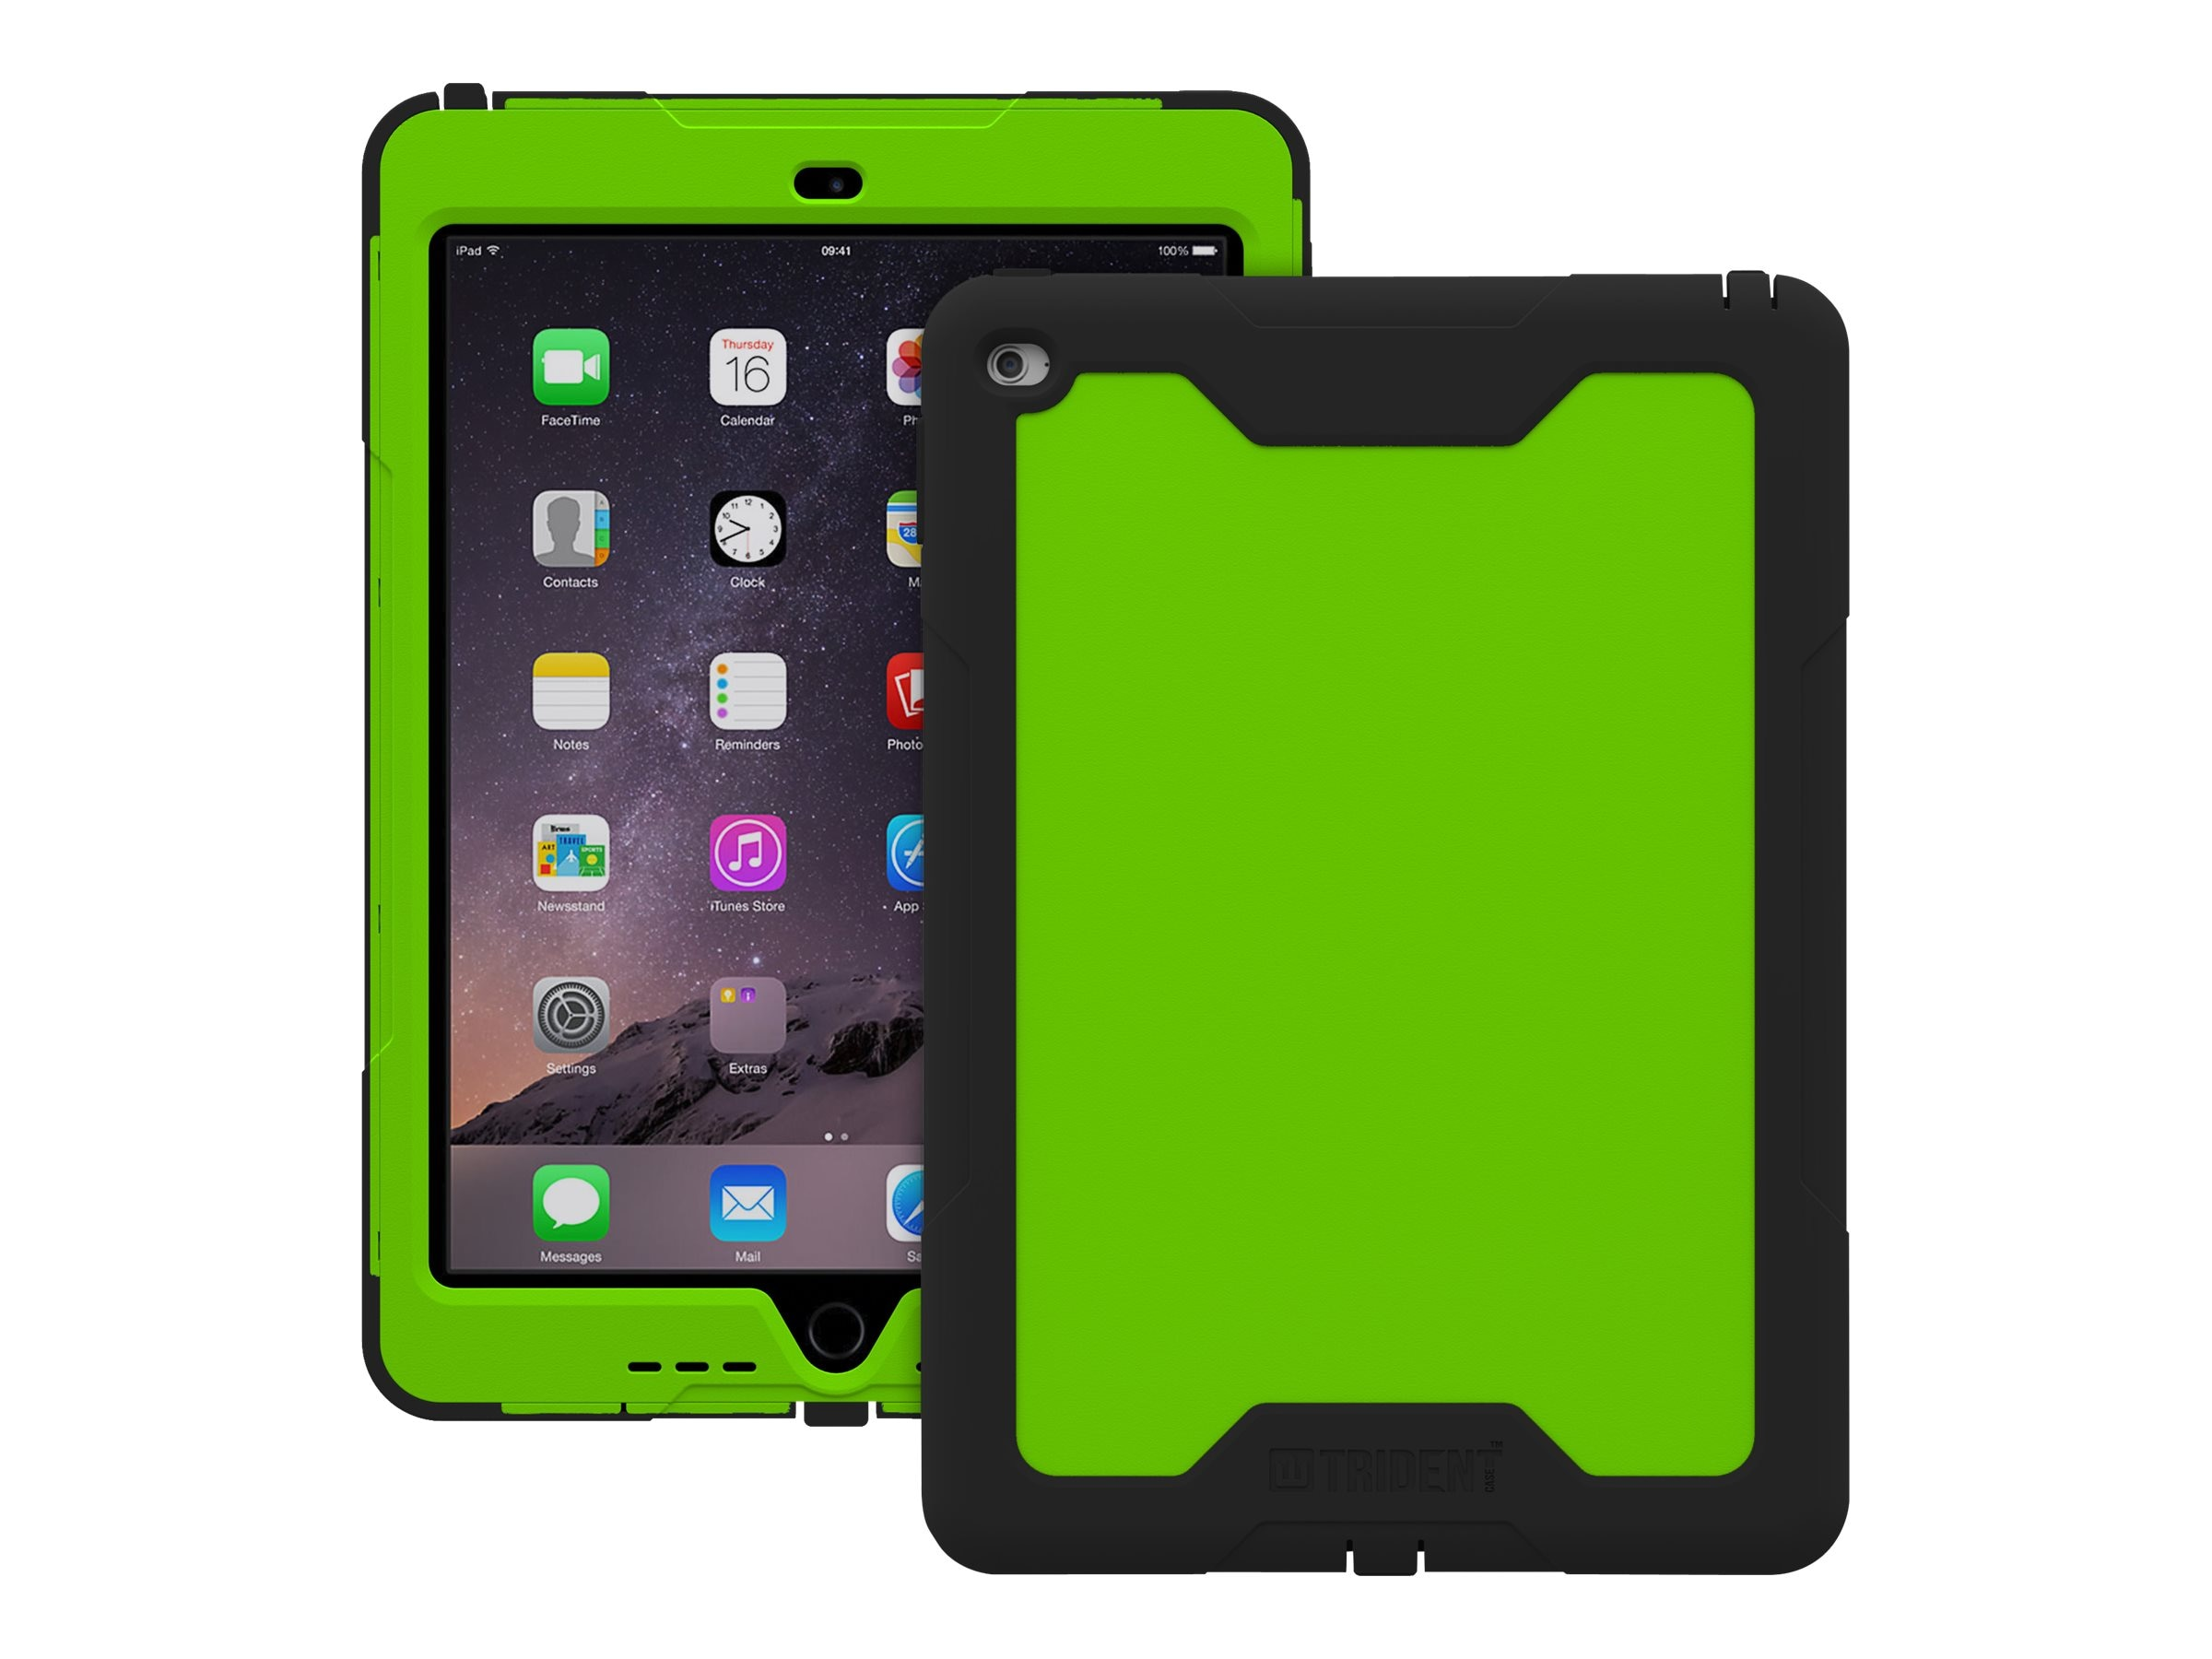 Trident Case 2015 Cyclops Case for iPad Air 2, Green, CY-APIPA2-TG000, 23619076, Carrying Cases - Tablets & eReaders